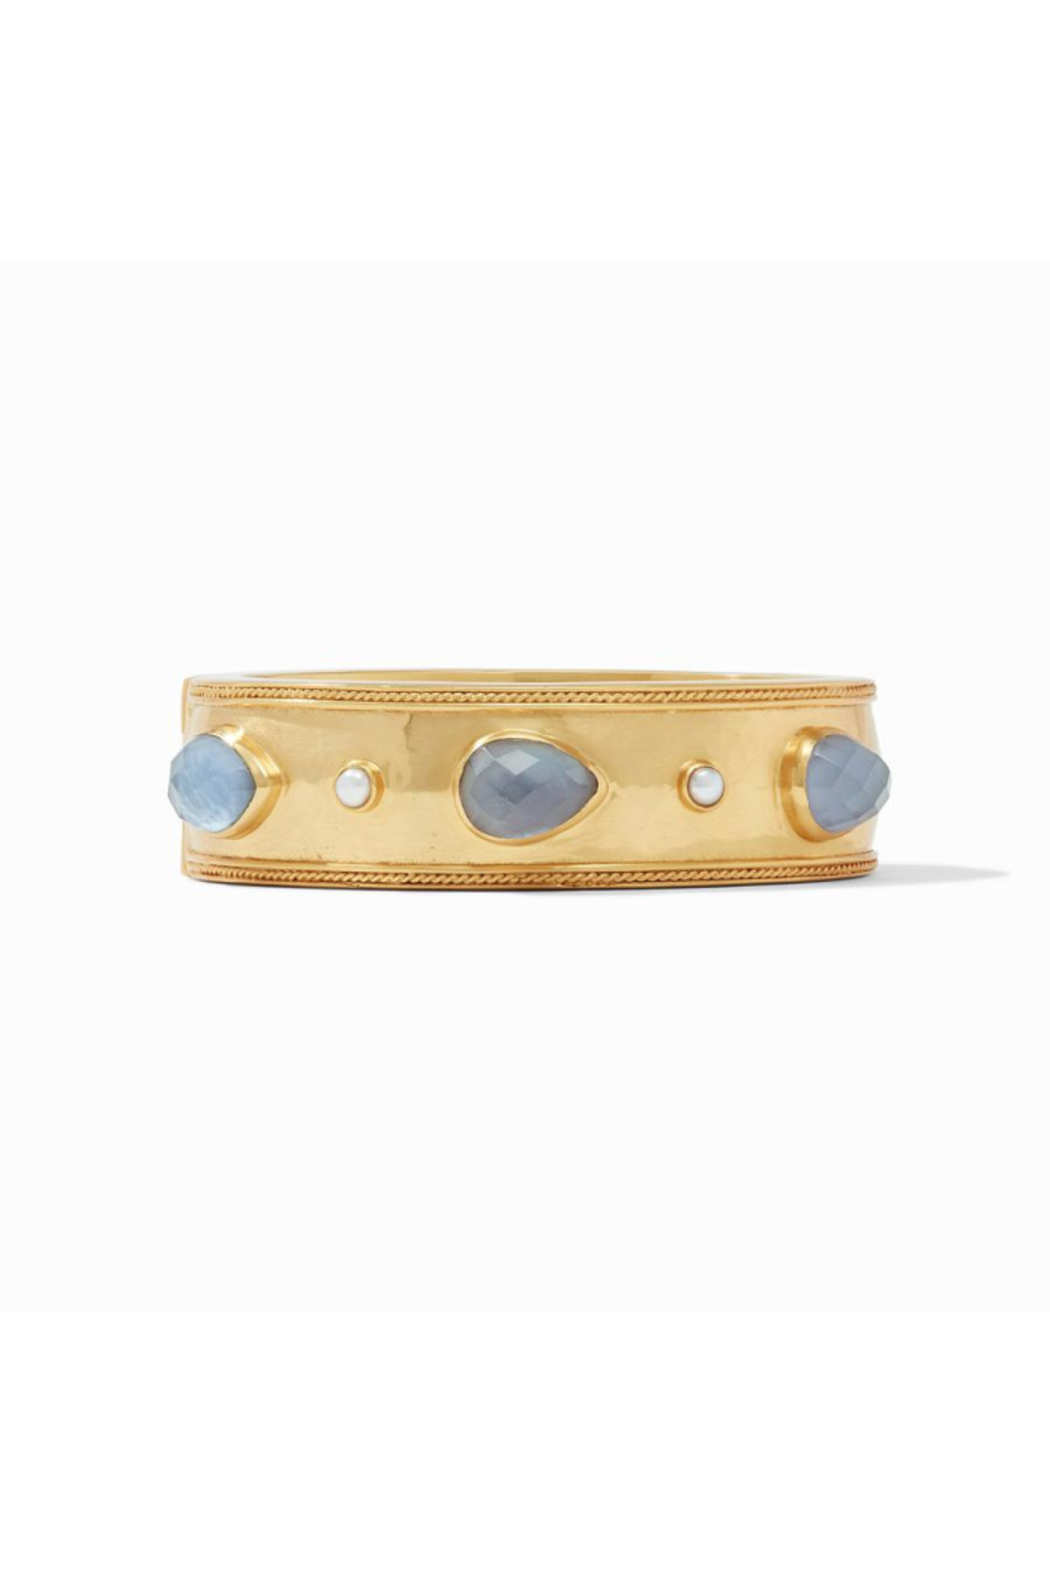 Julie Vos Cassis Statement Hinge Bangle-Gold/Iridescent Slate Blue w/ Pearl Accents - Main Image